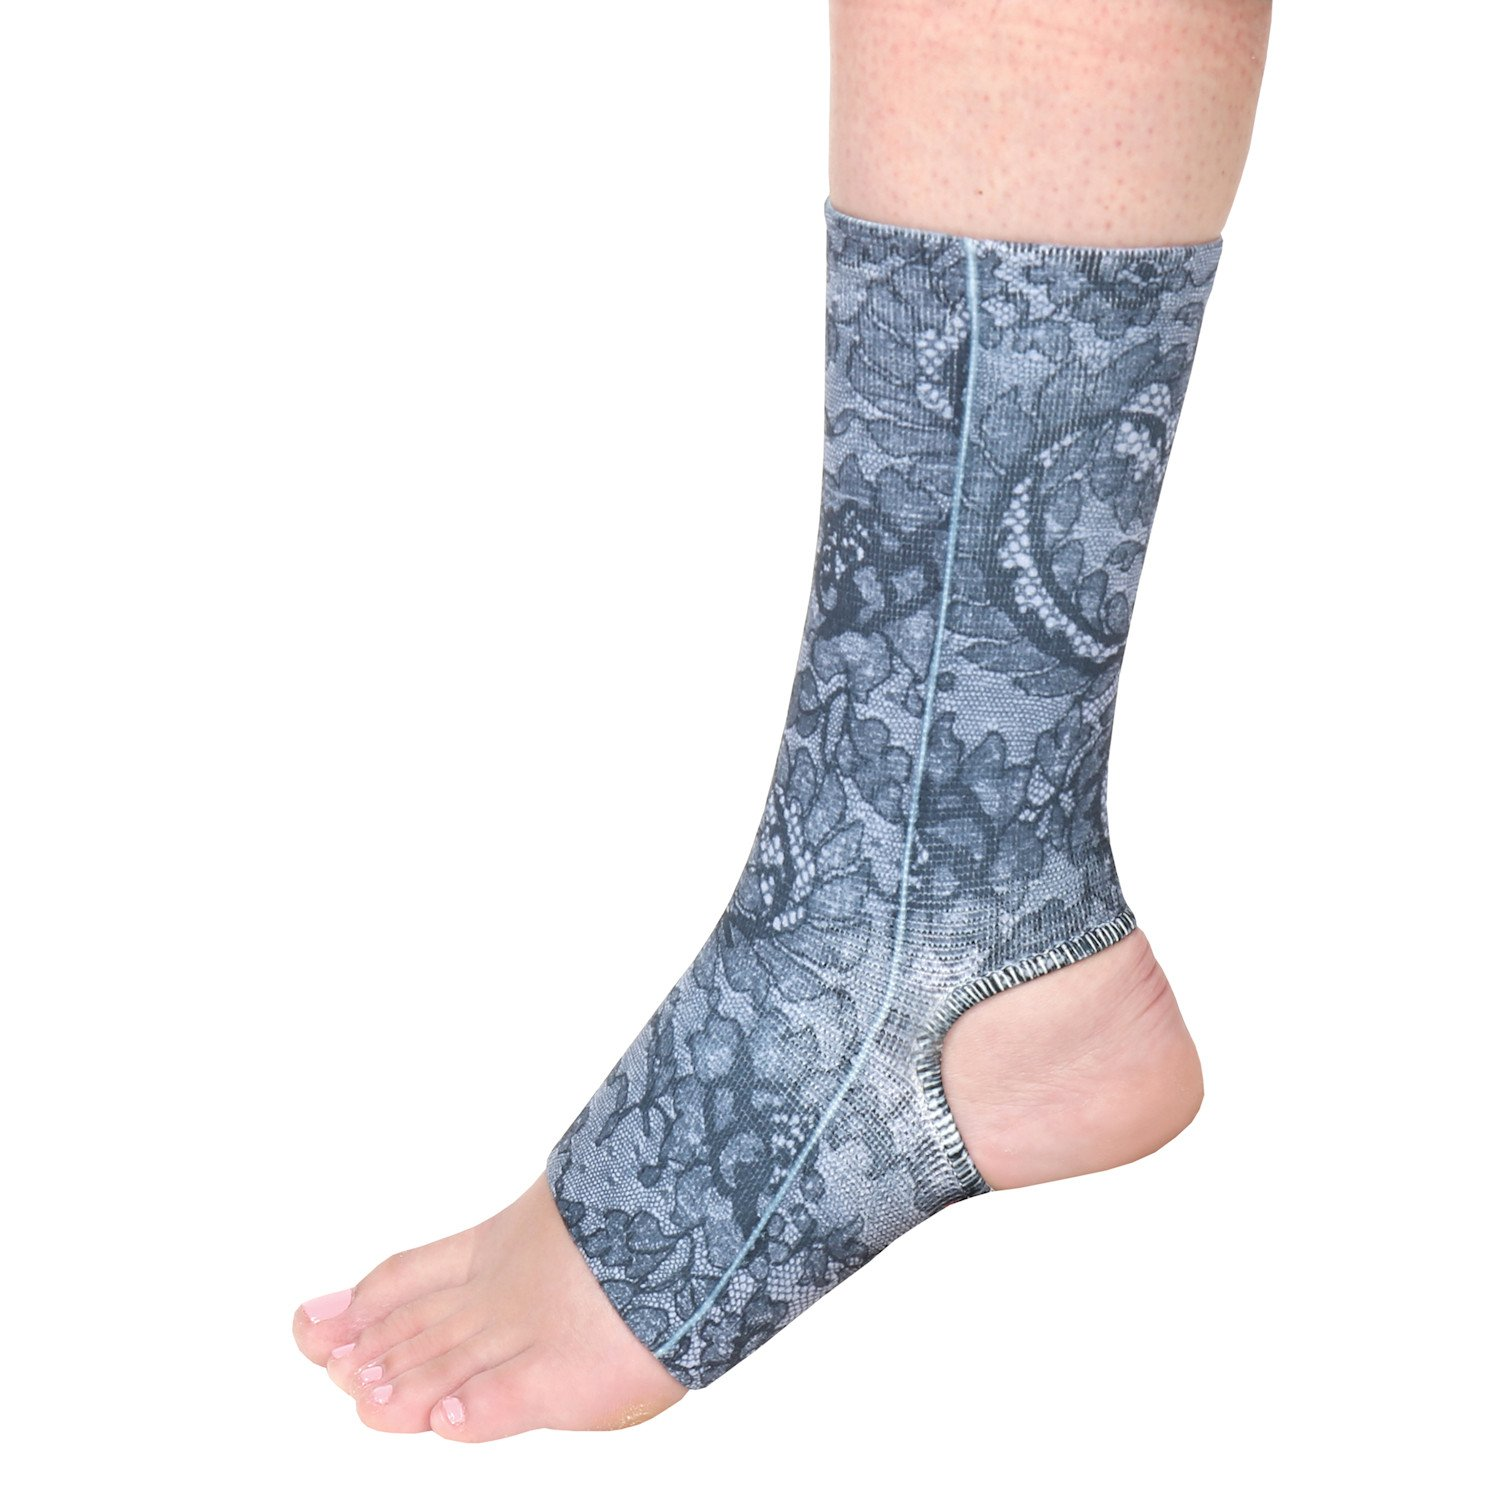 Celeste Stein Designs Women's Ankle Compression Sleeve - Printed Elastic Support Brace - Black Lace - Queen by Celeste Stein Designs